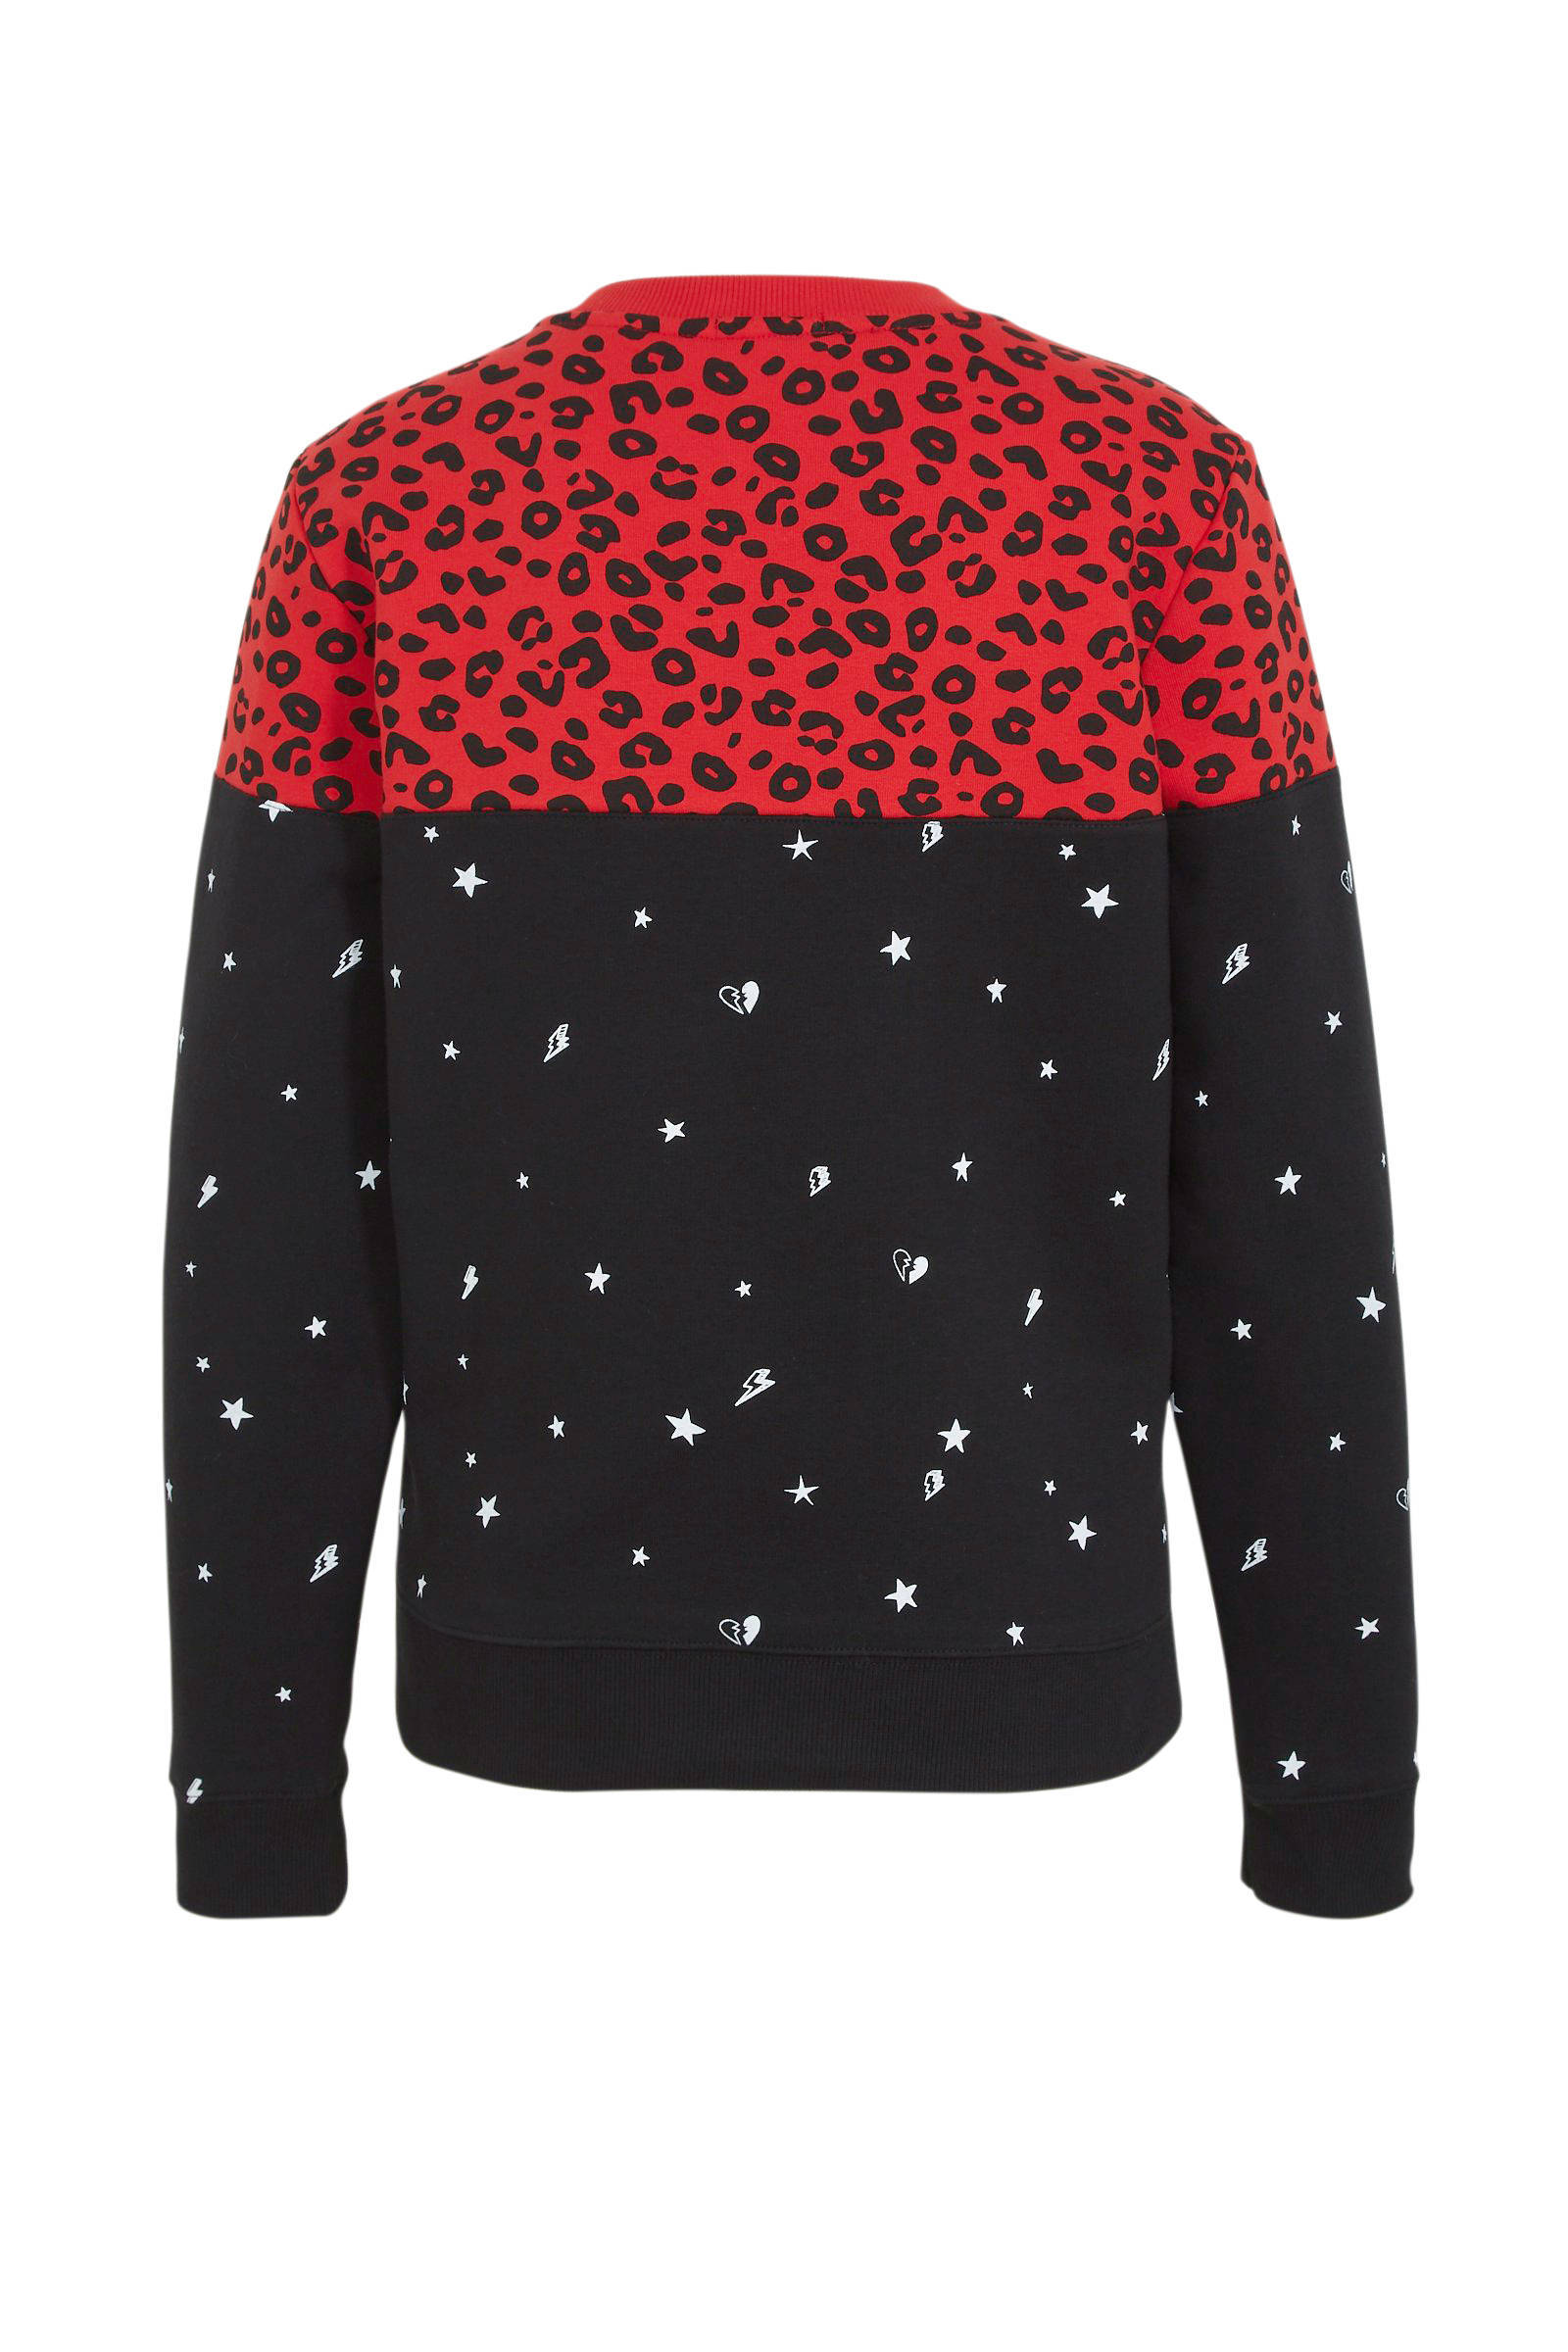 Colourful Rebel sweater Leopard Star met panterprint zwart